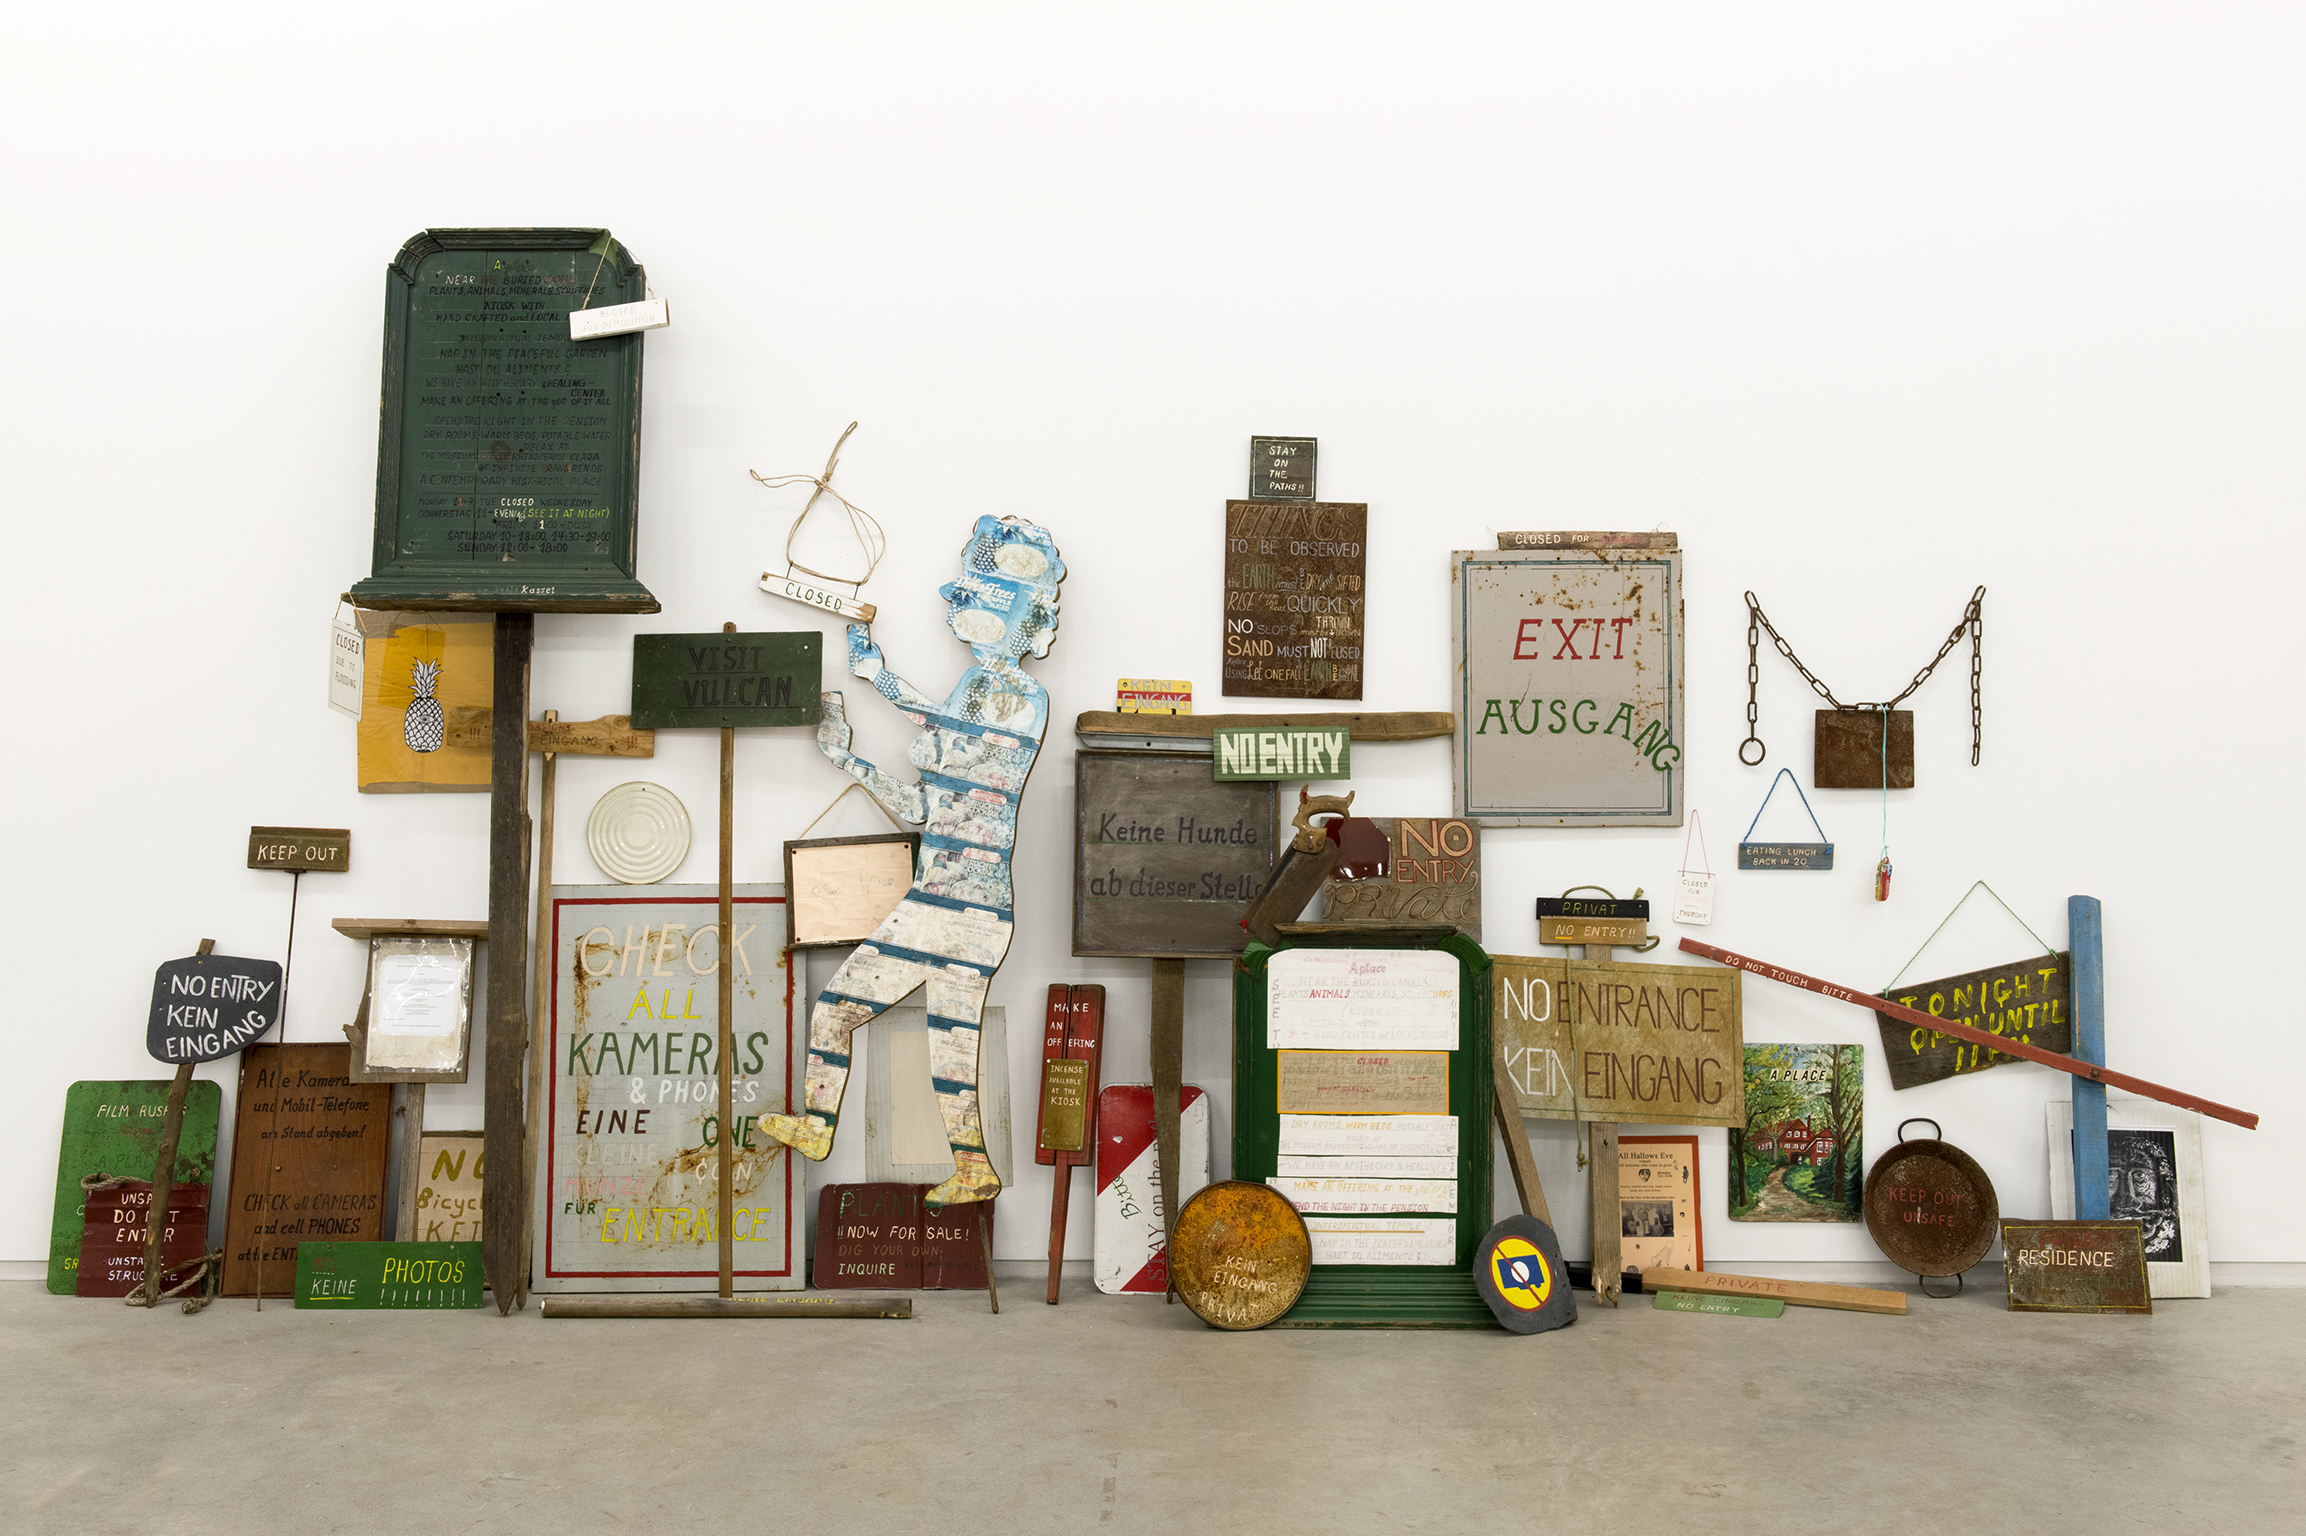 Gareth Moore, From a place, near the buried canal, 2011–2012, wood, steel, rope, stone, paper, acrylic and enamel paint, felt marker, 93 x 166 x 17 in. (236 x 422 x 42 cm)   by